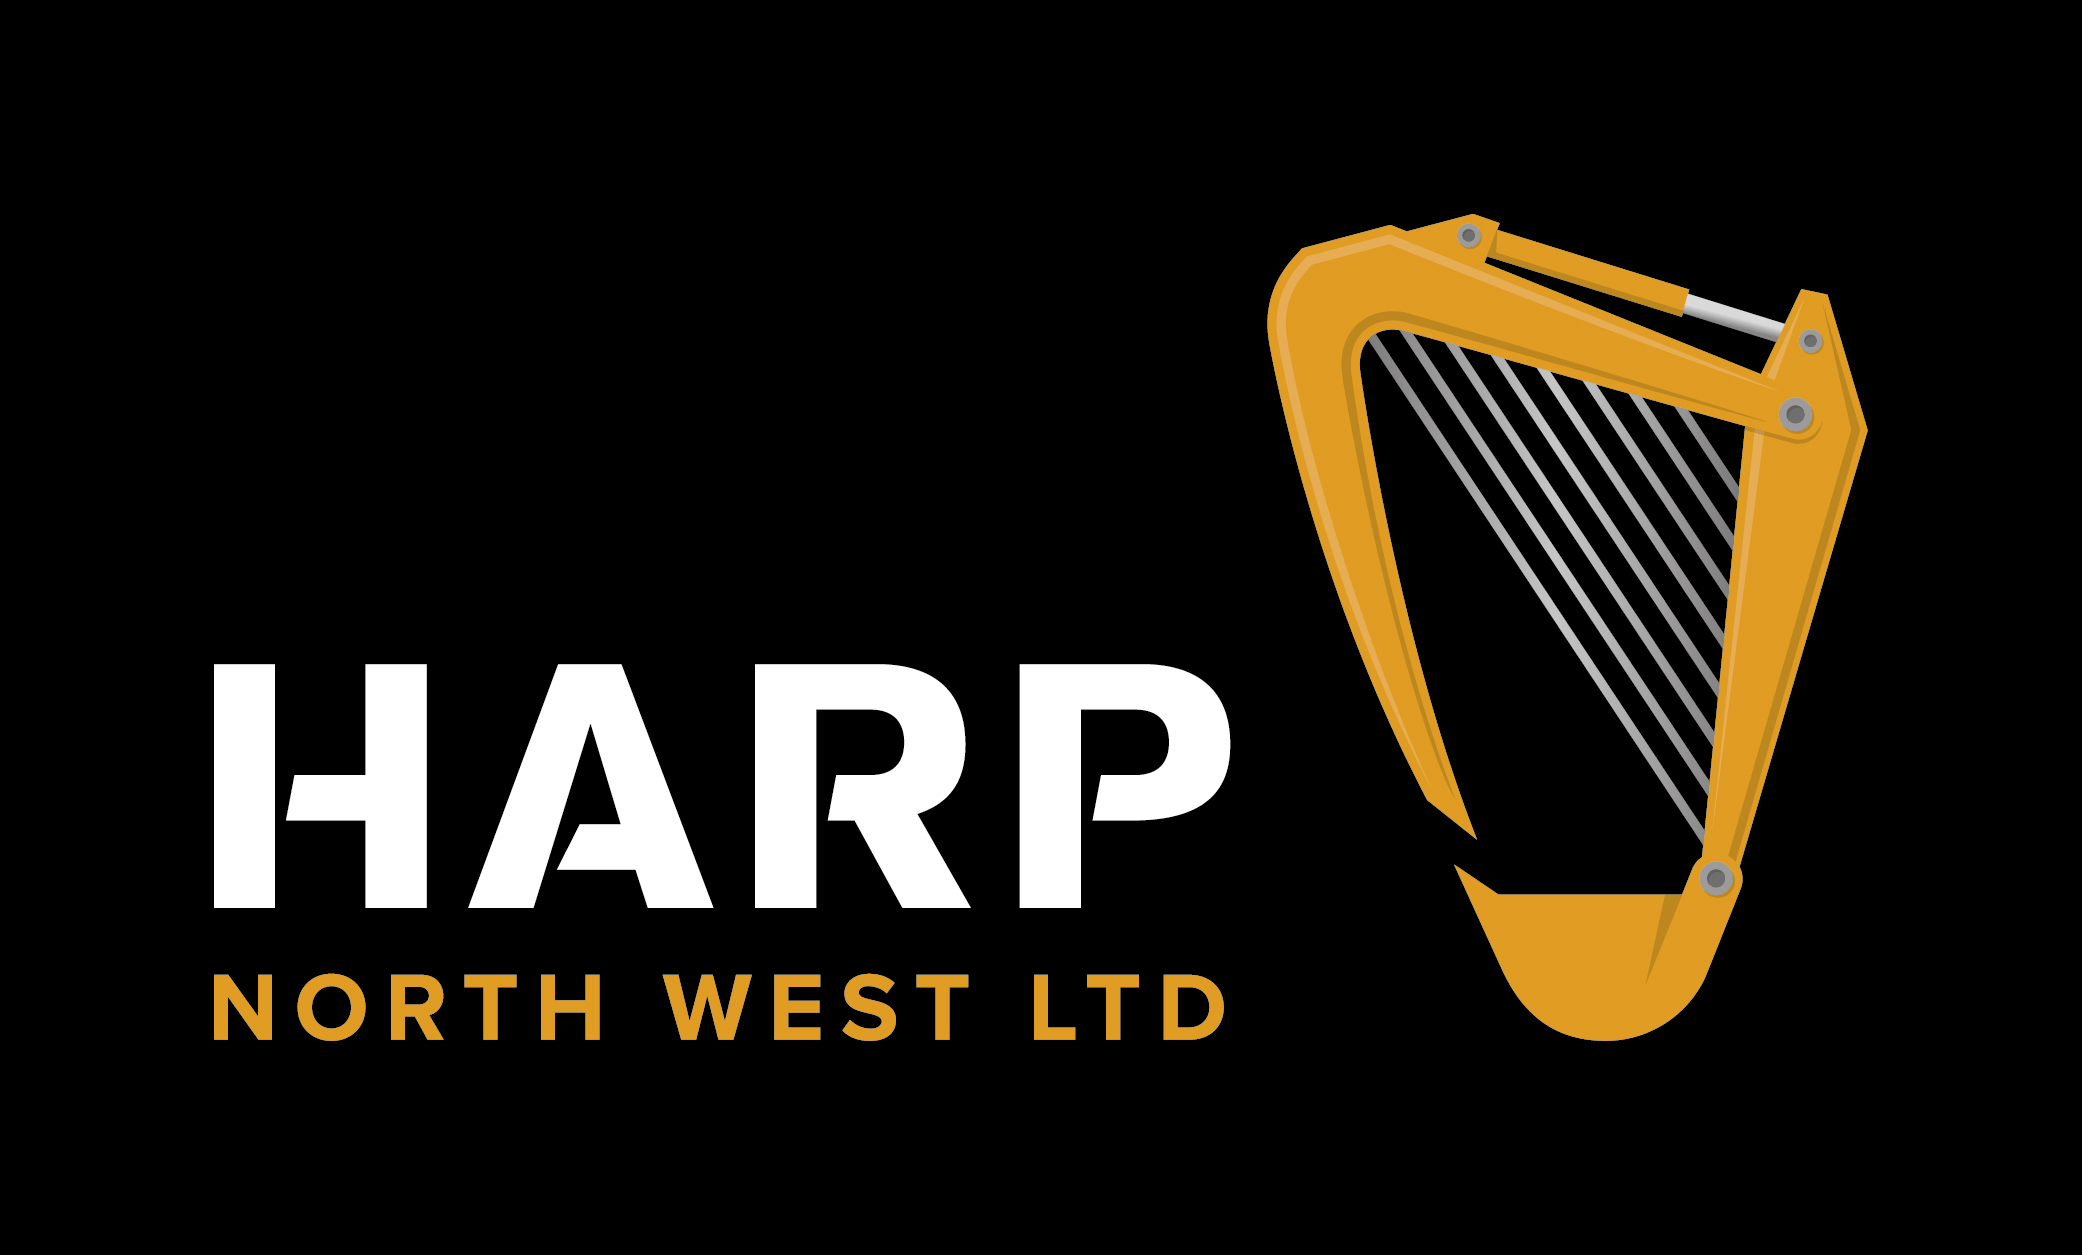 Harp North West Ltd